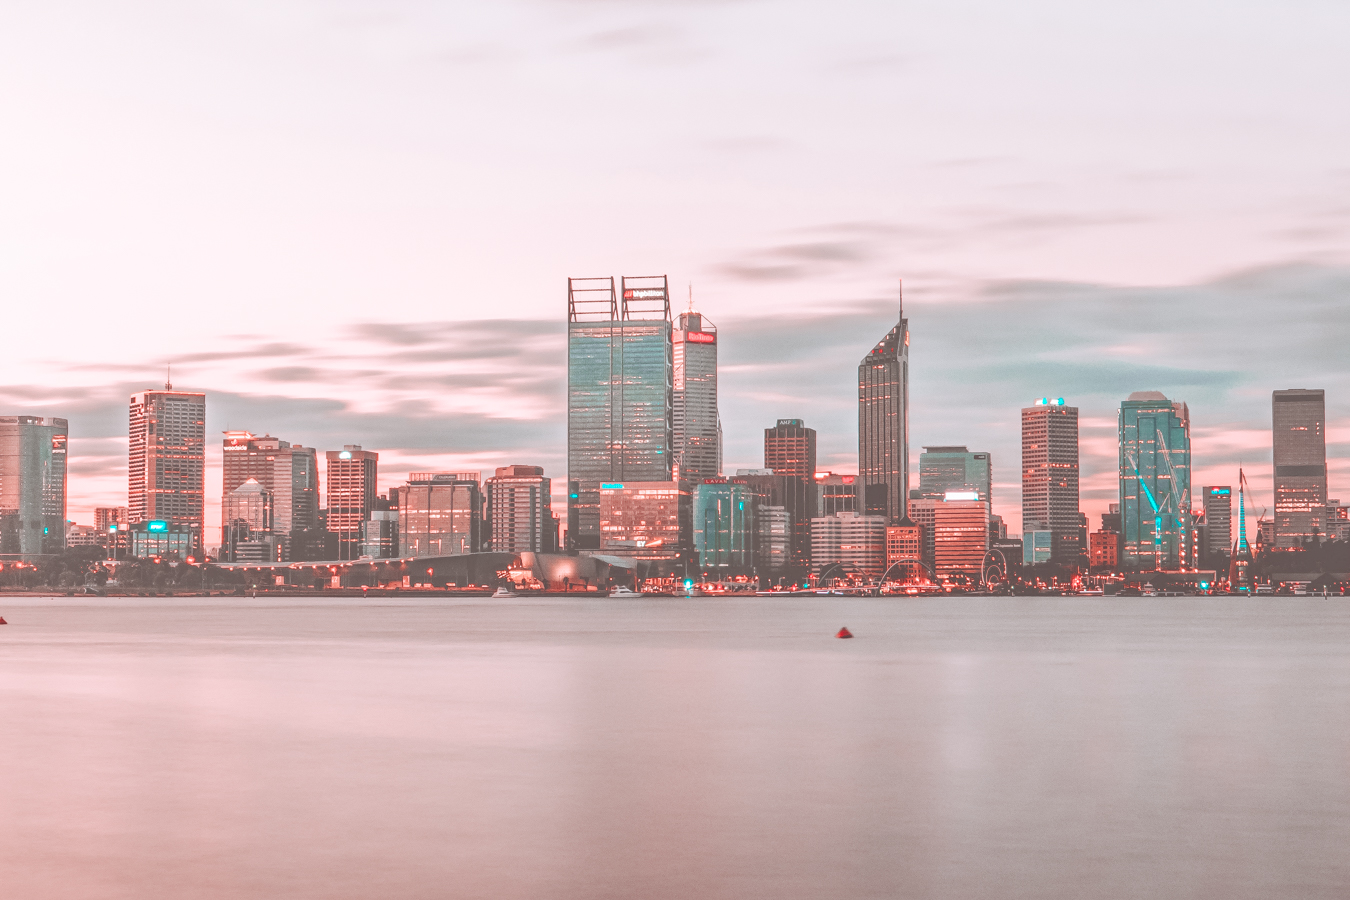 Perth in the evening